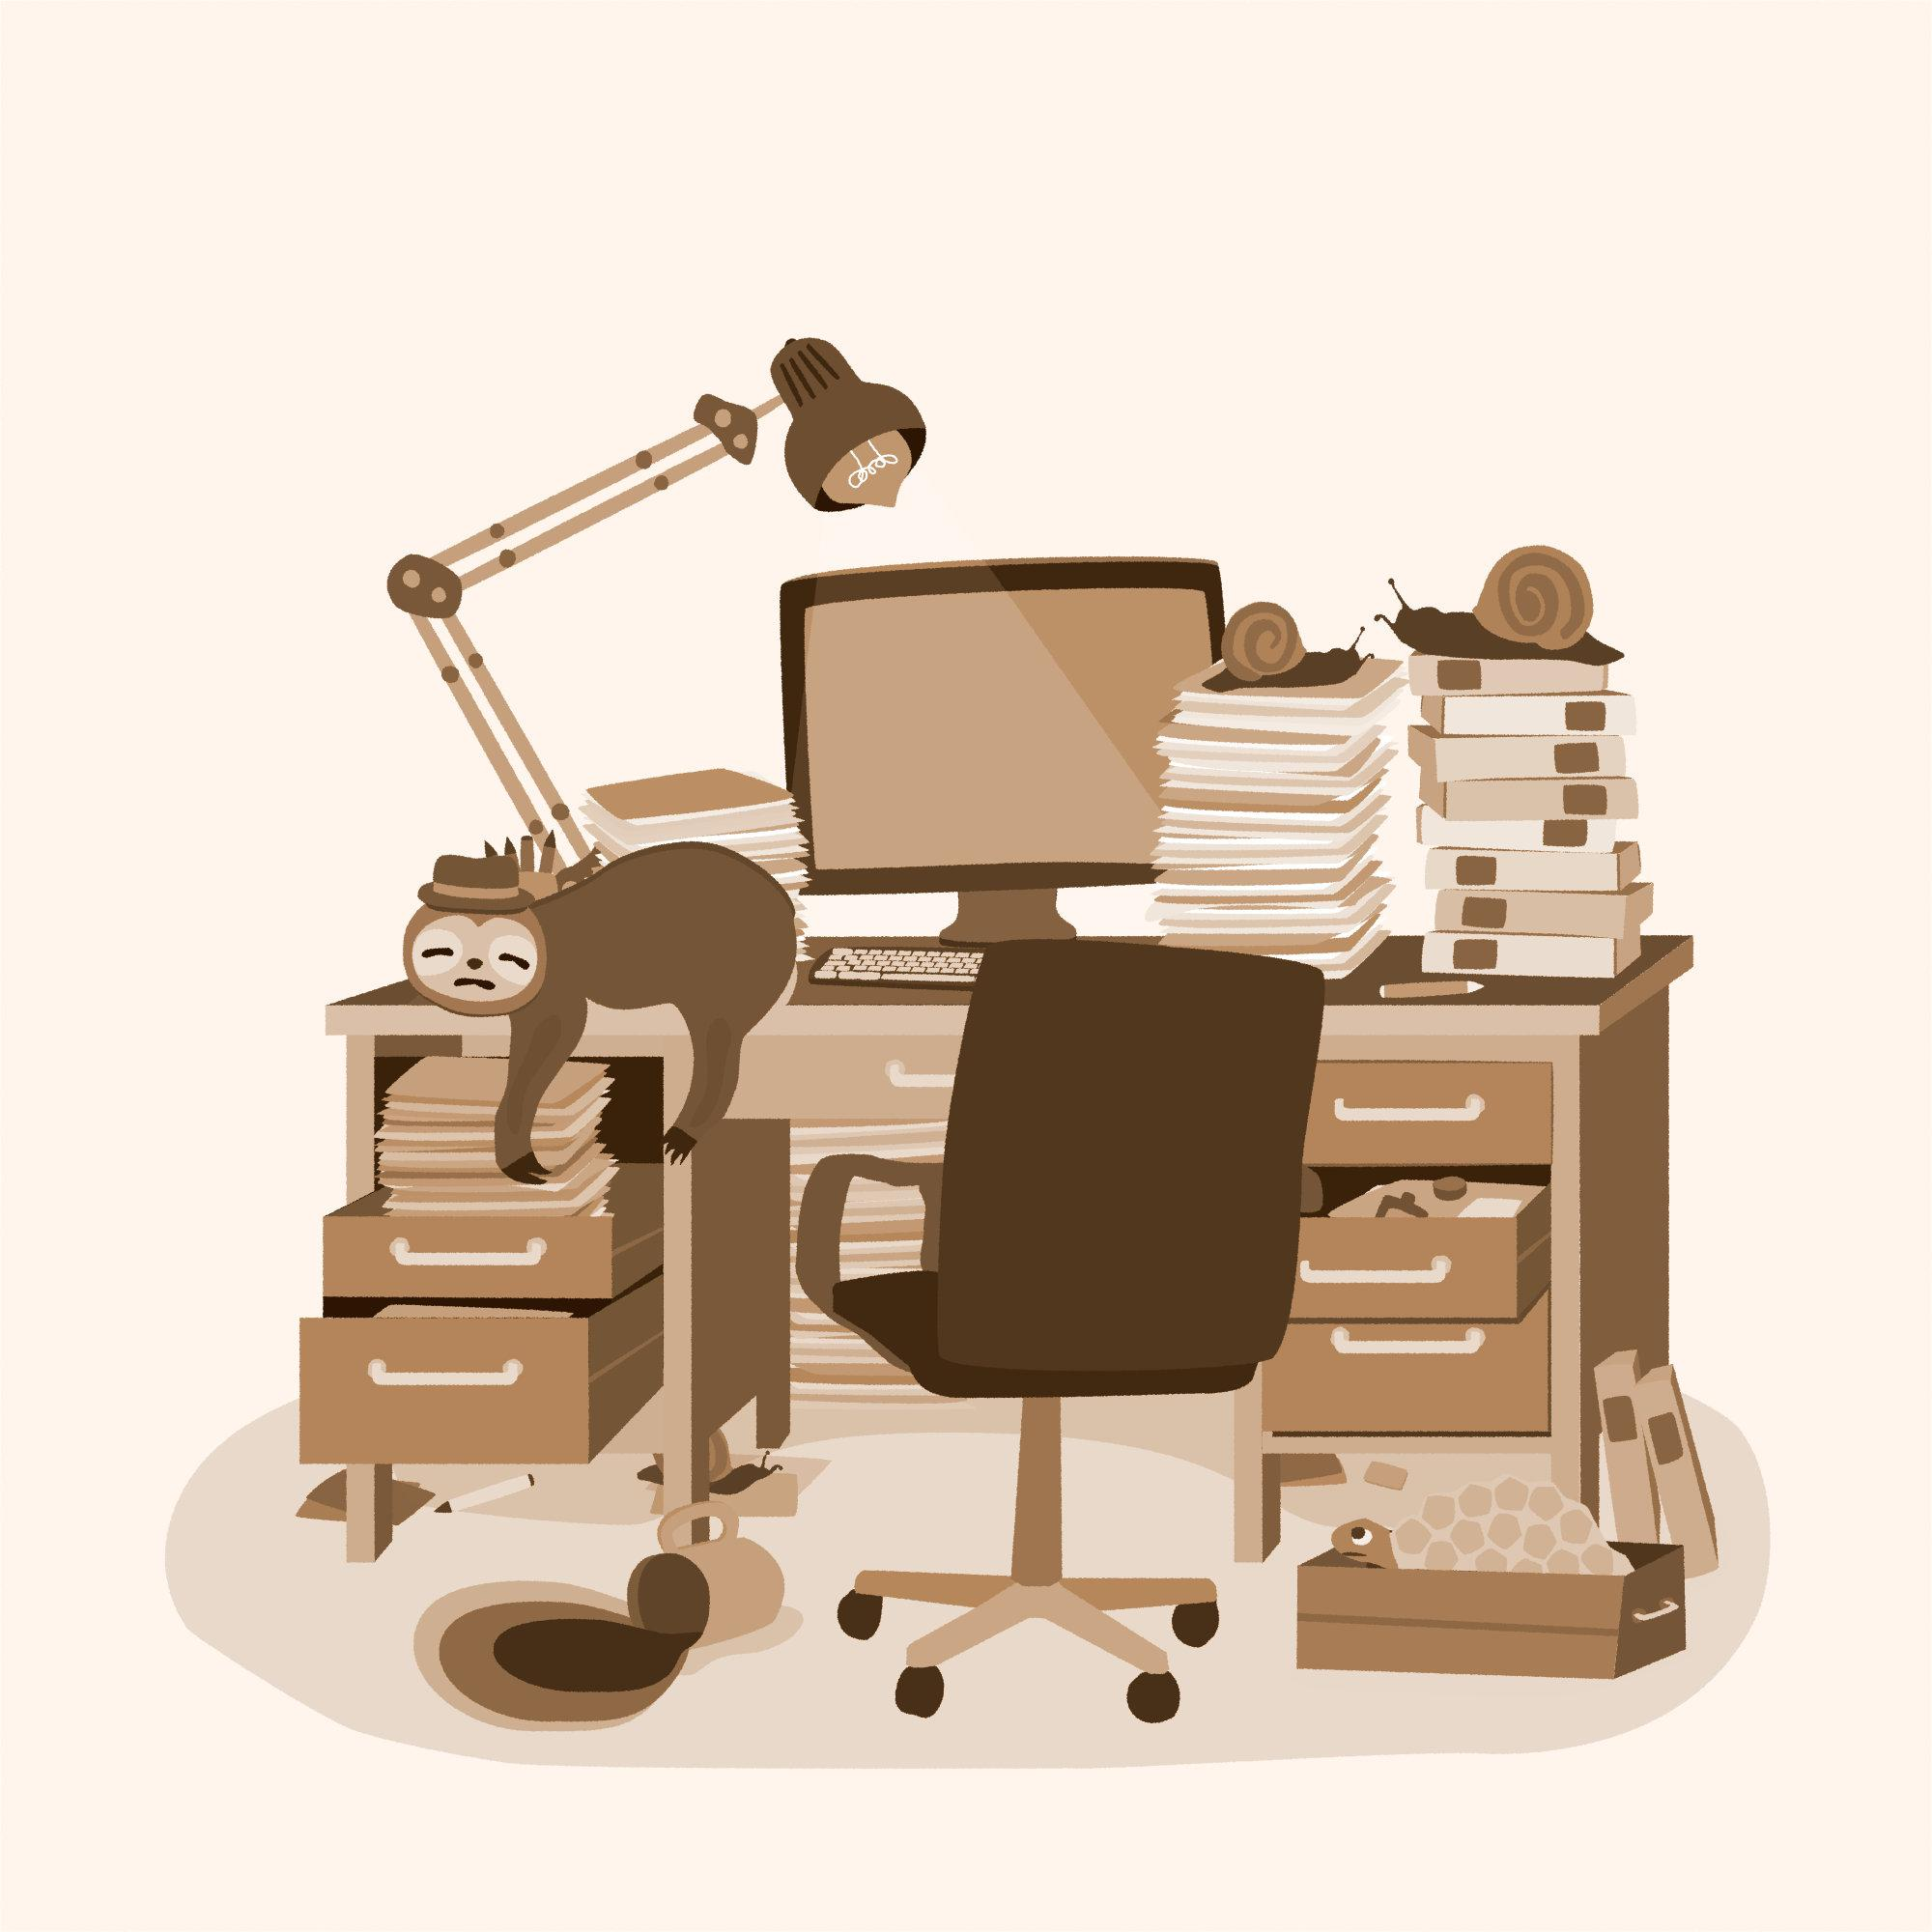 Image shows a cluttered desk with a sloth sloping off the side.